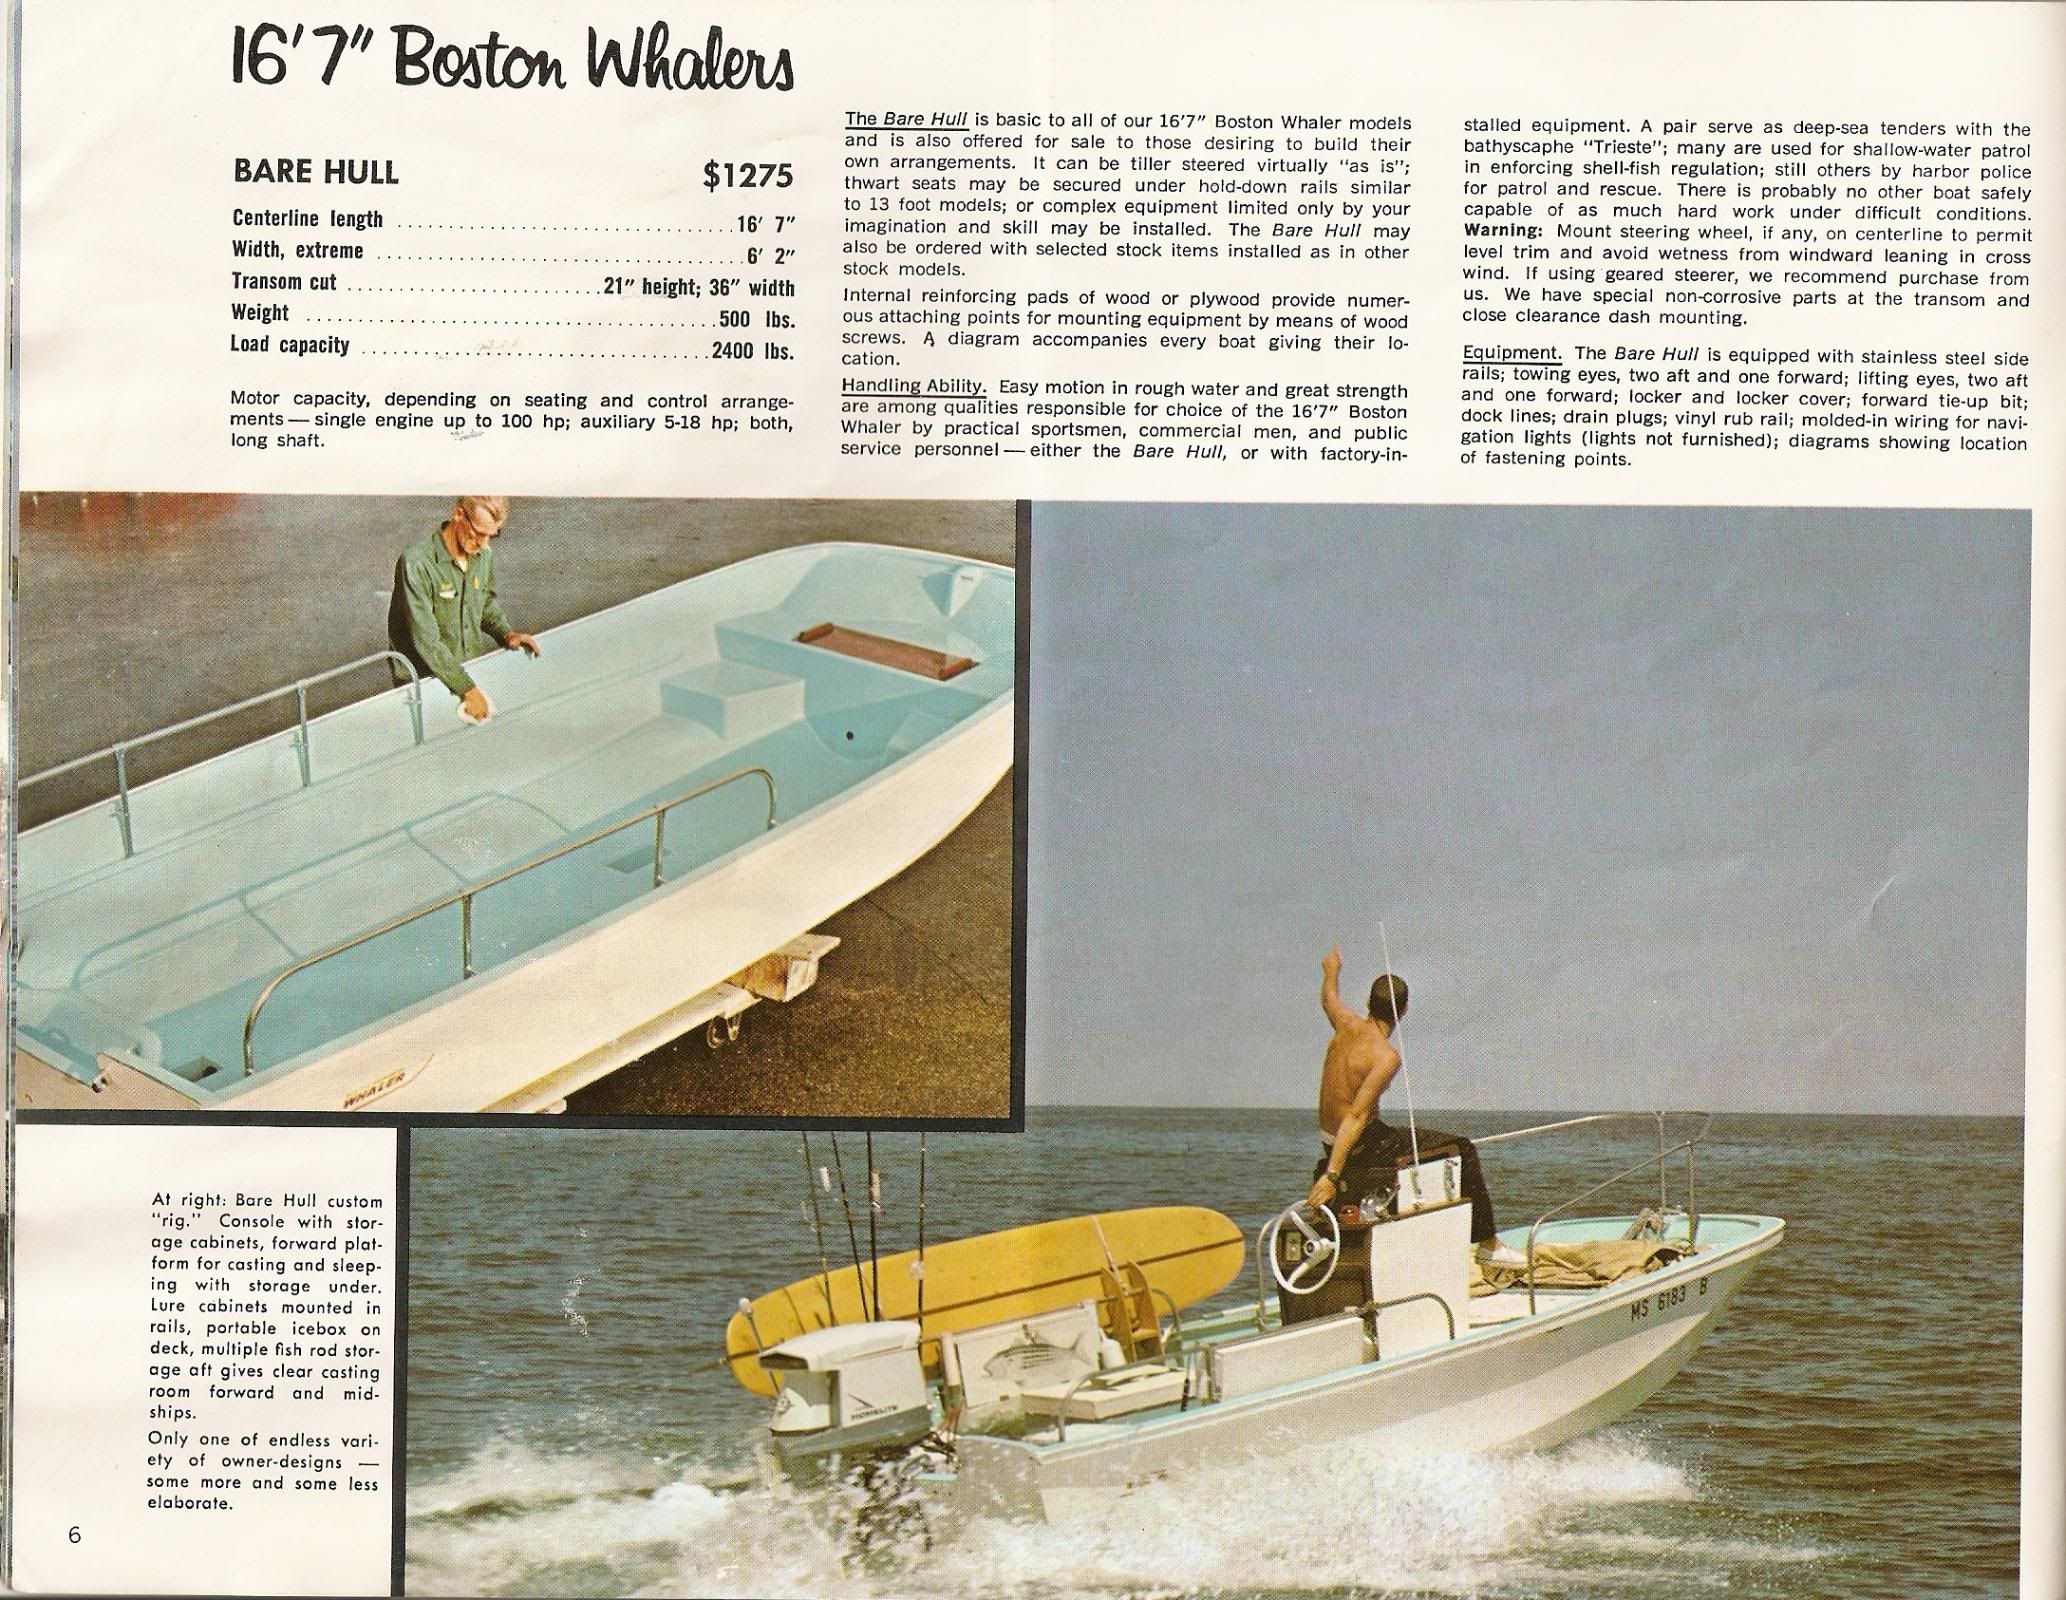 1b3712bc012f1e9d3943862dec3aebcf photo pg6 jpg boats pinterest boston whaler rage 15 jet boat wiring diagram at crackthecode.co